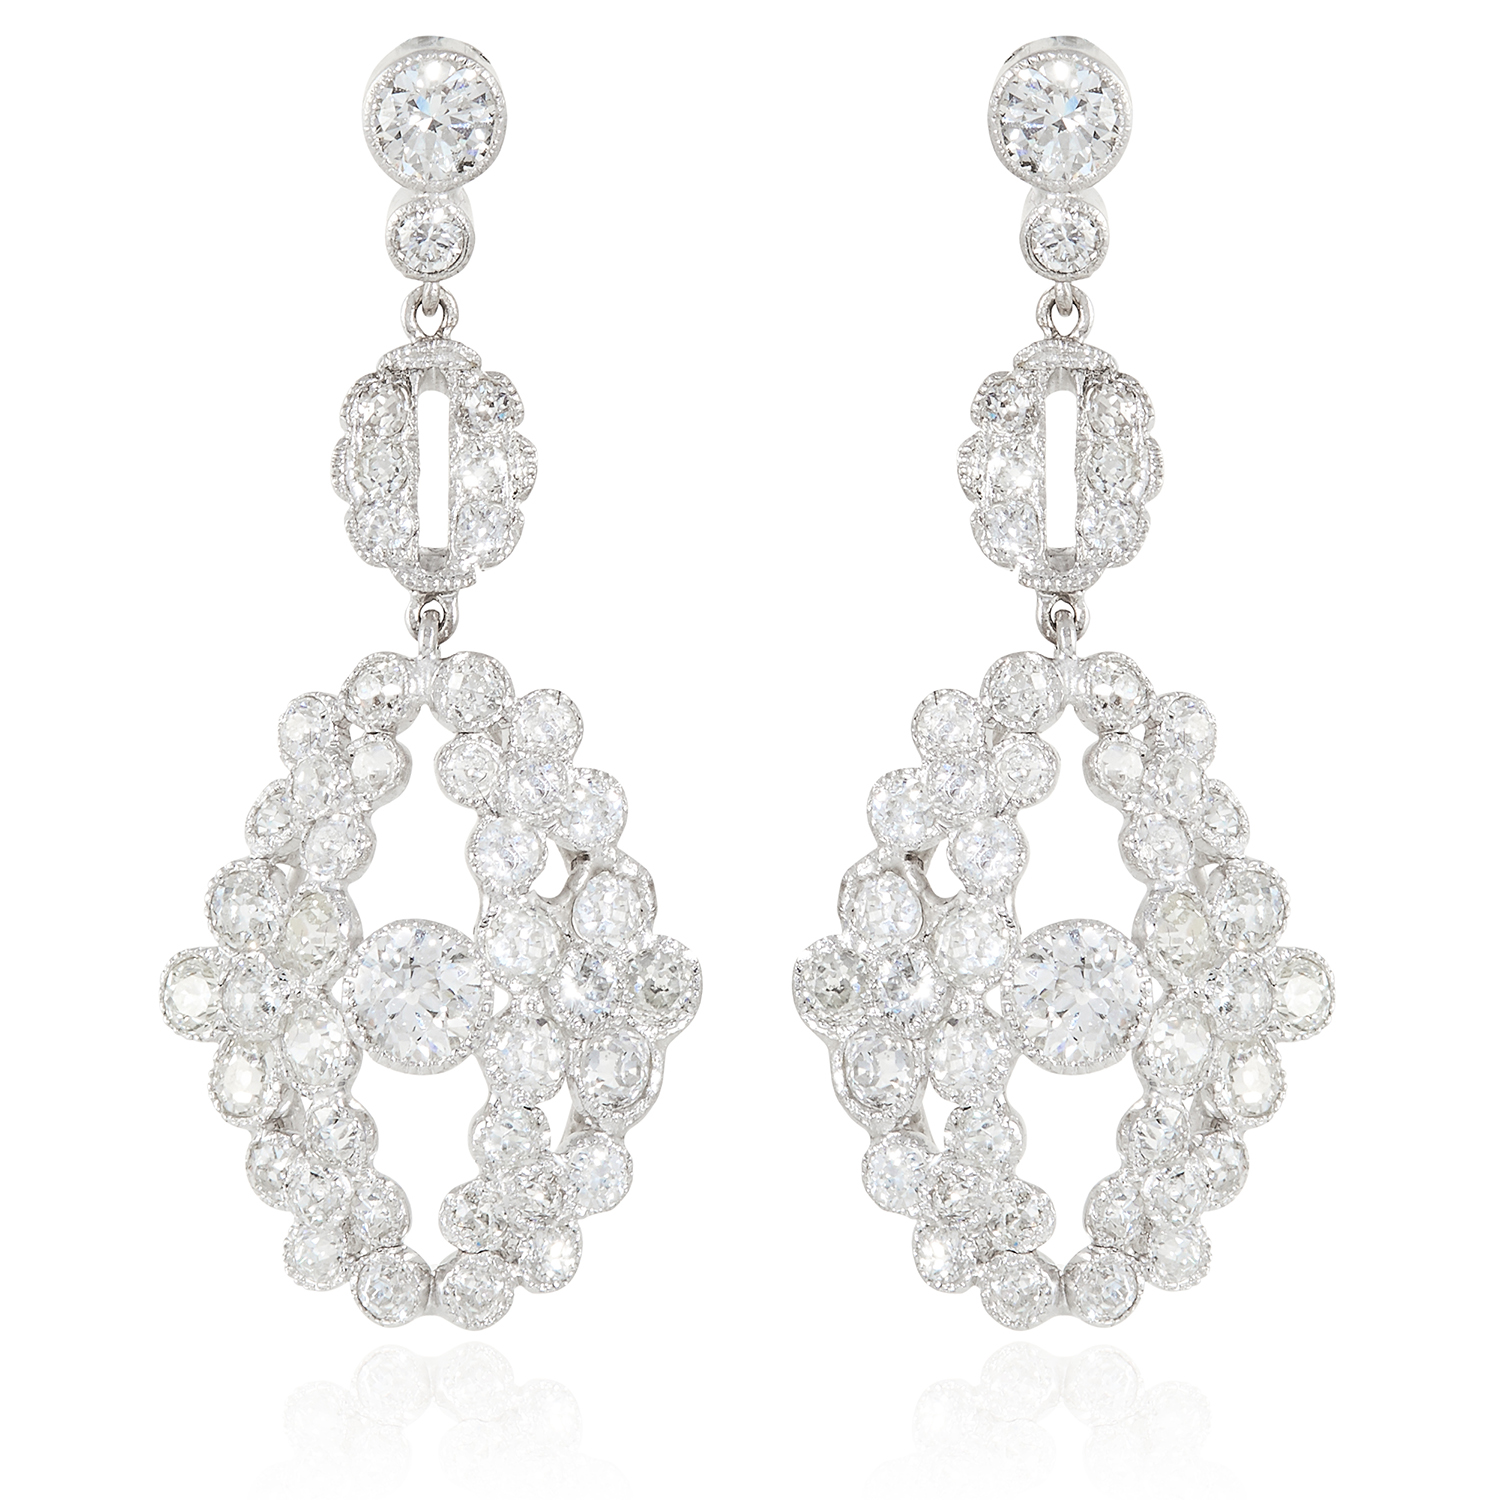 Los 28 - A PAIR OF ANTIQUE 5.25 CARAT DIAMOND EARRINGS in 18ct white gold, each set with a principal old